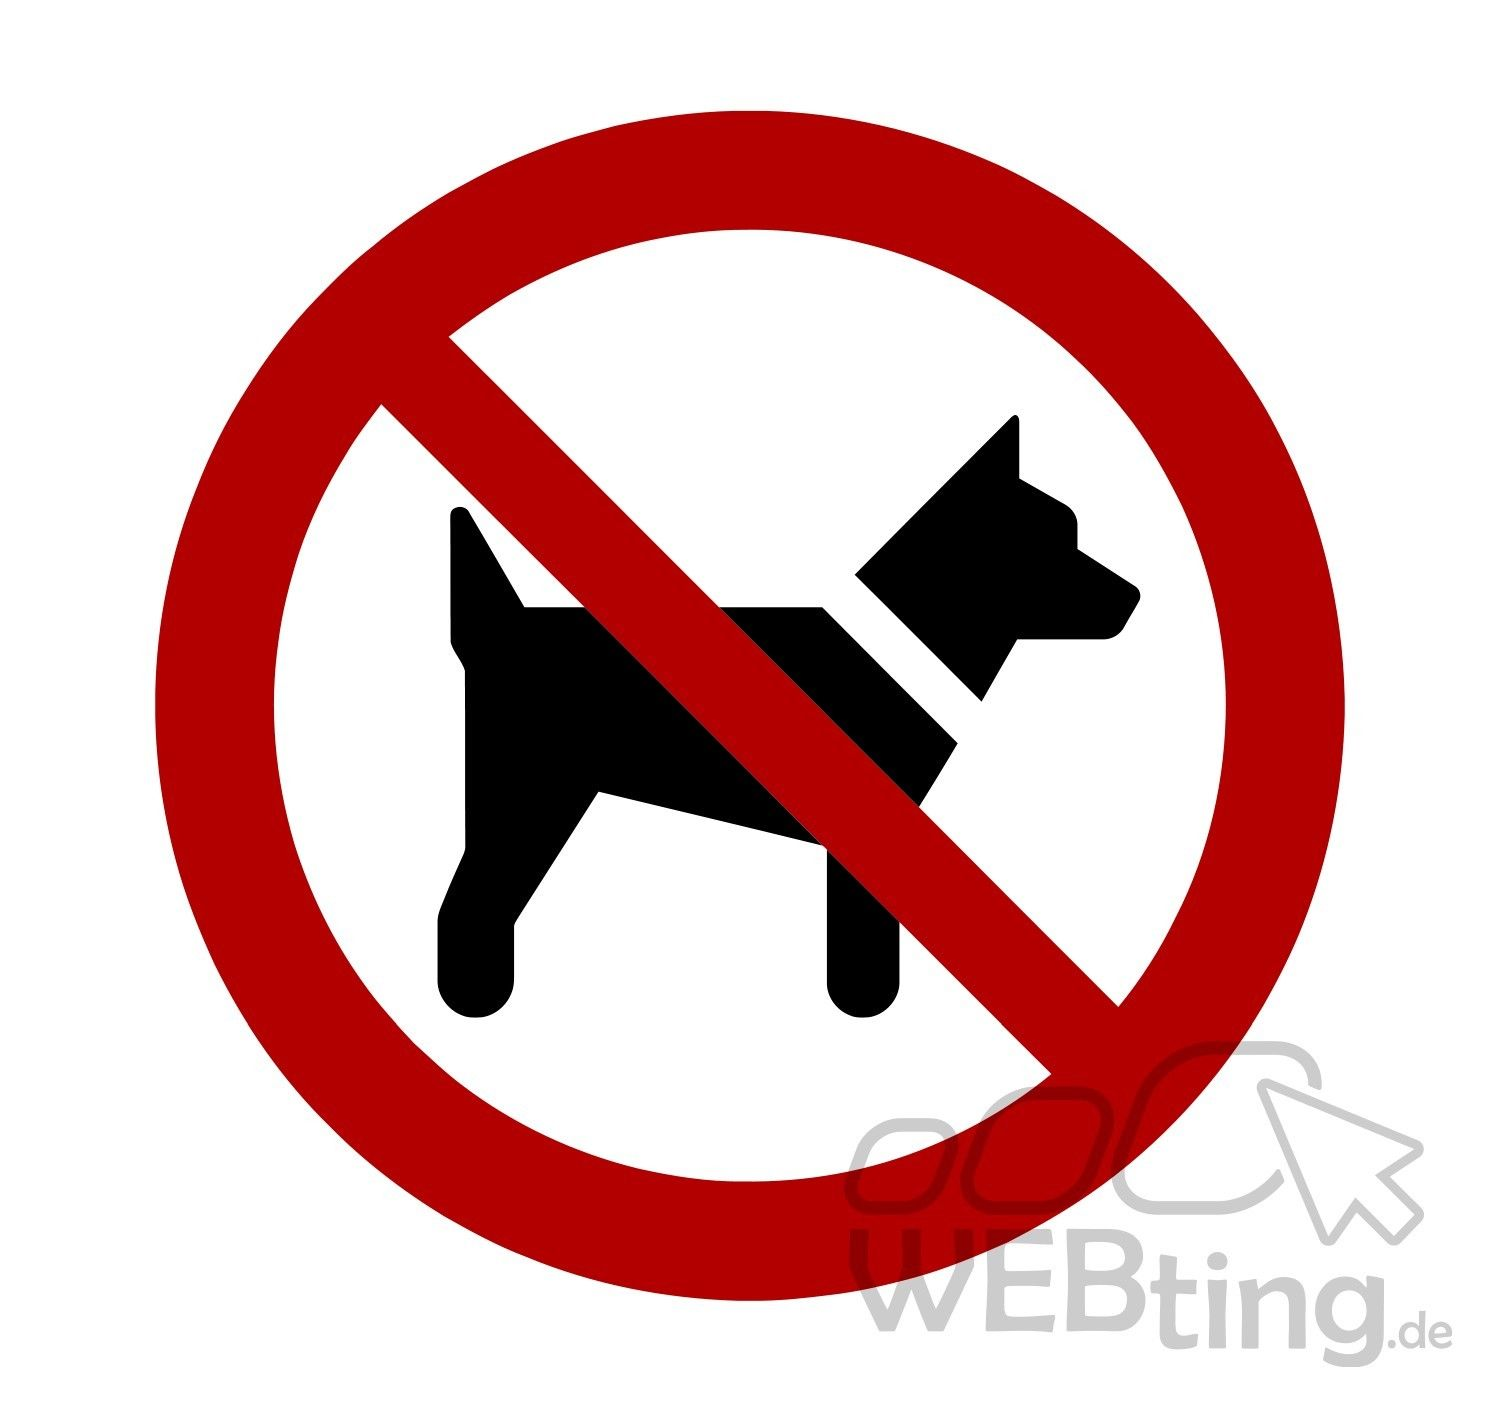 hunde verboten warnschild verbot hinweis aufkleber sticker schild hinweis symbol. Black Bedroom Furniture Sets. Home Design Ideas